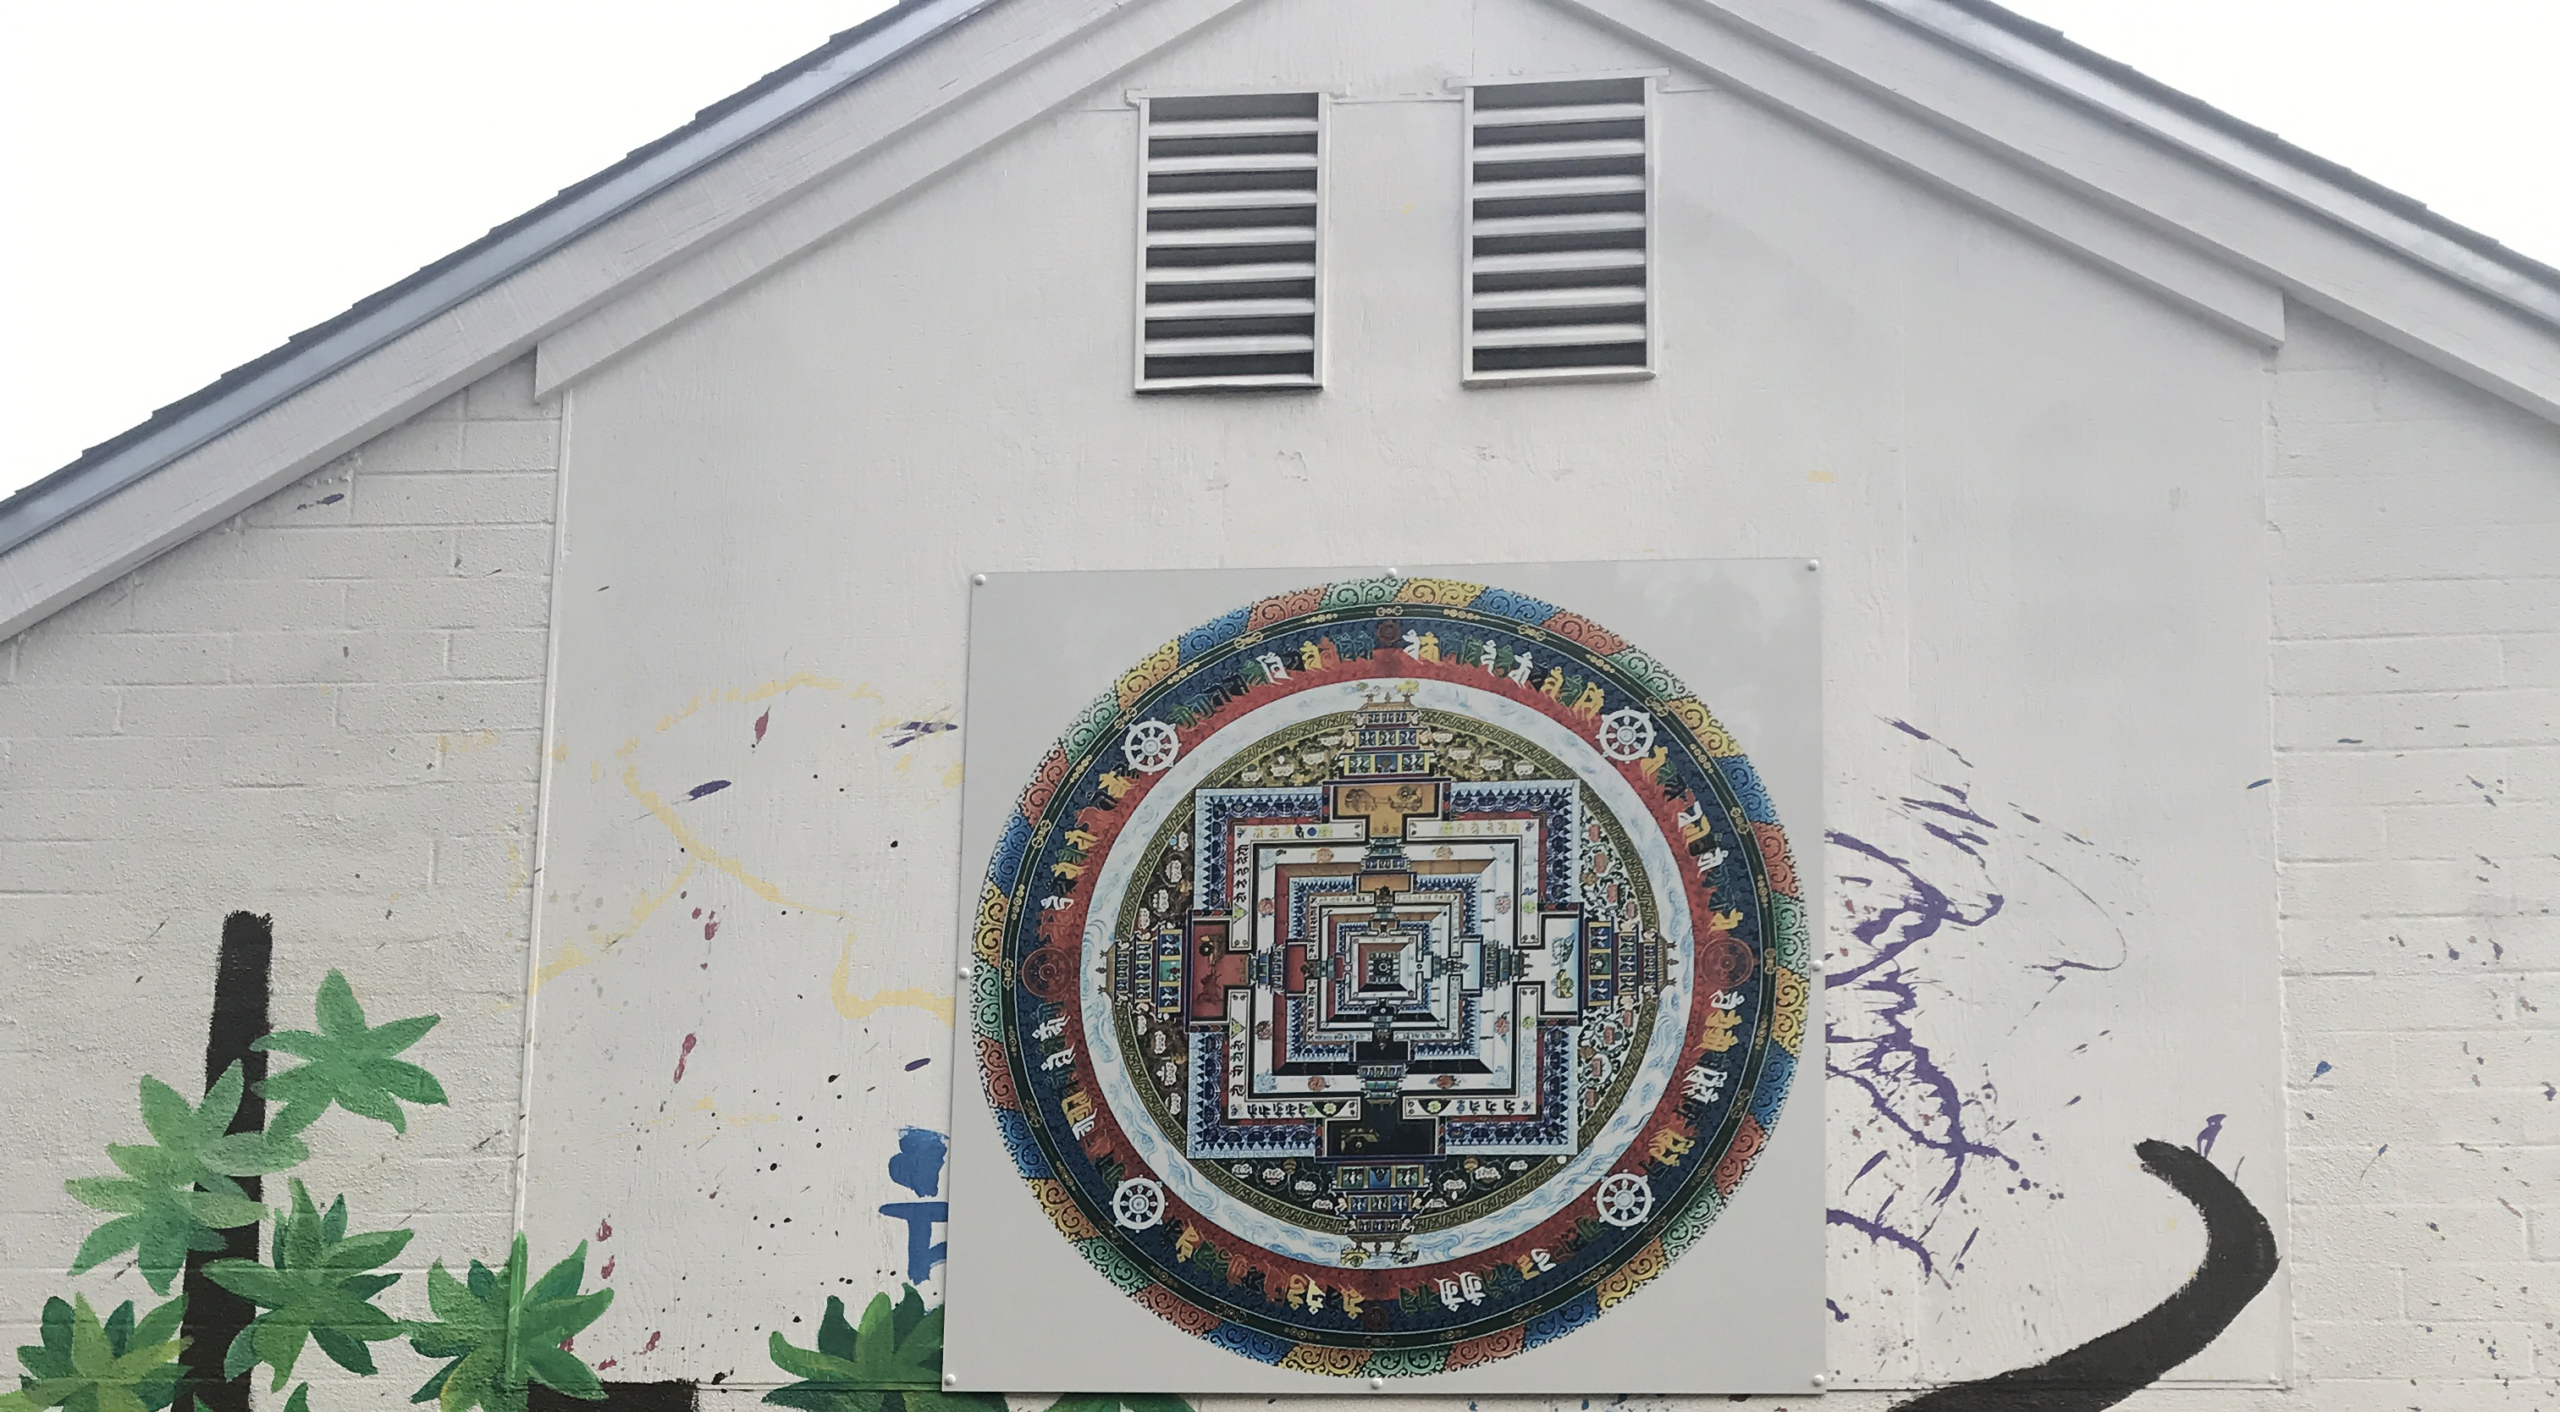 the Kalachakra Mandala vynyl reproduction is positioned at the center of the coming mural